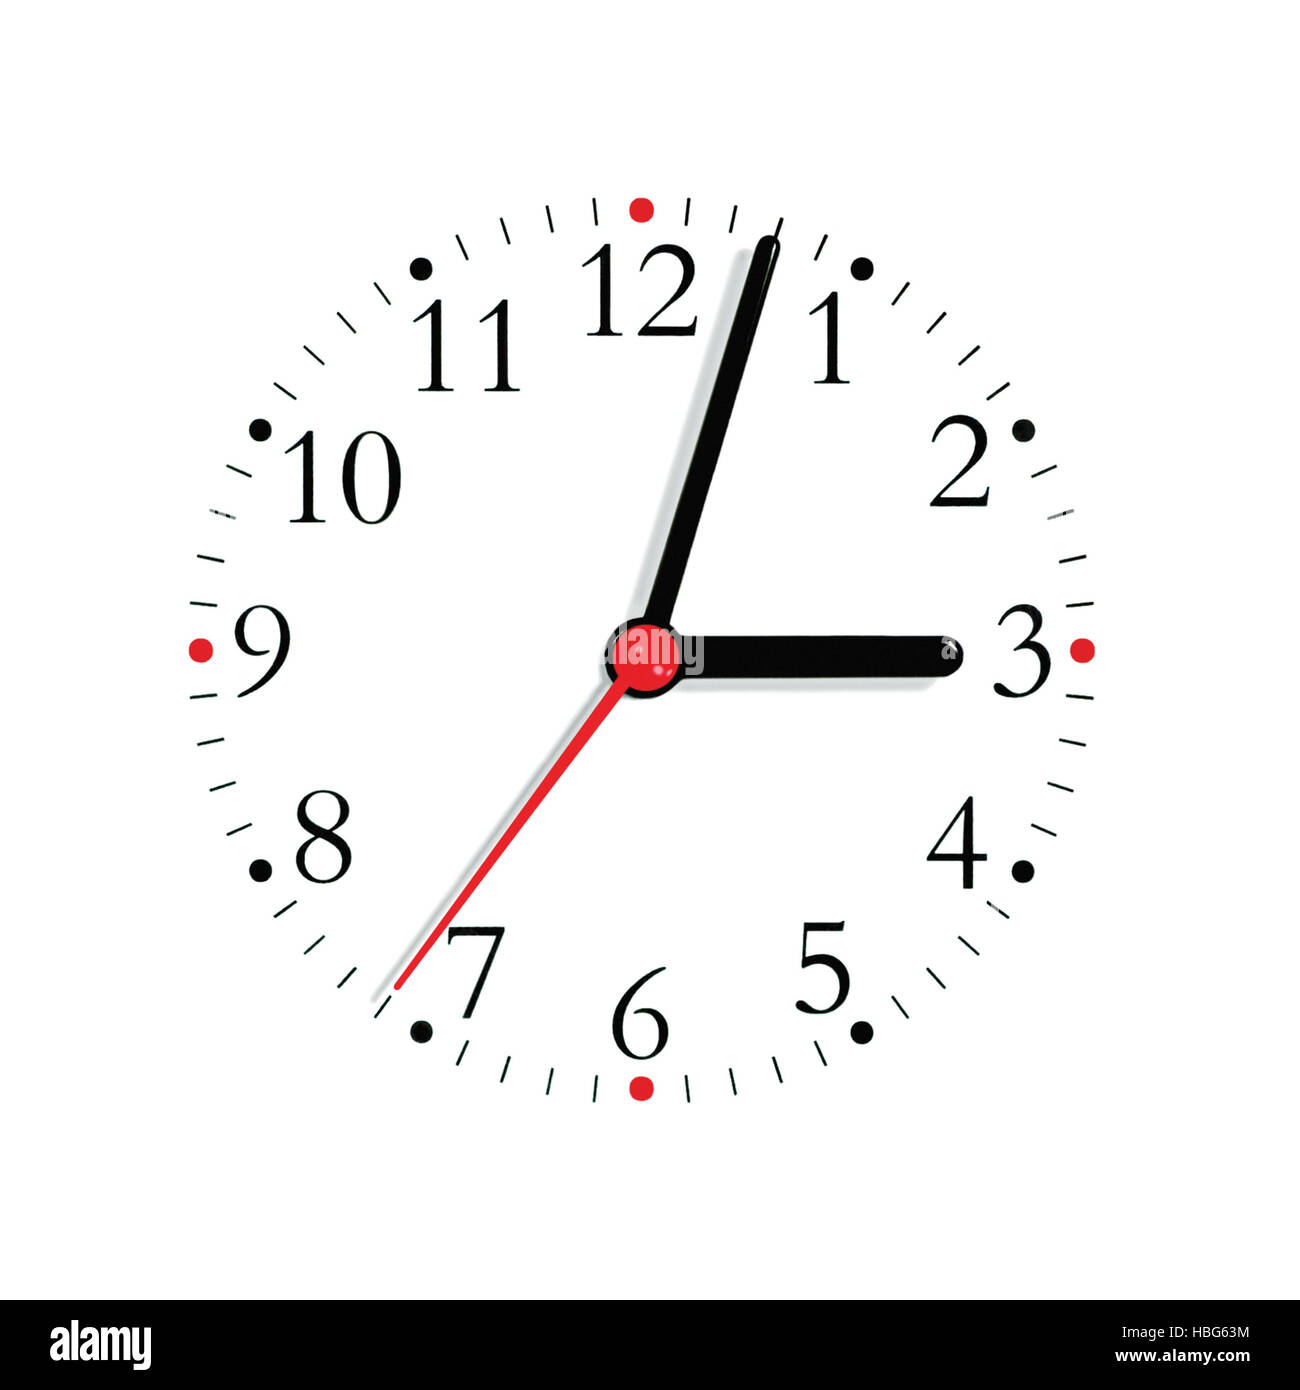 Analogue clock face dial in black and seconds hand in red at 3:03, isolated macro closeup - Stock Image